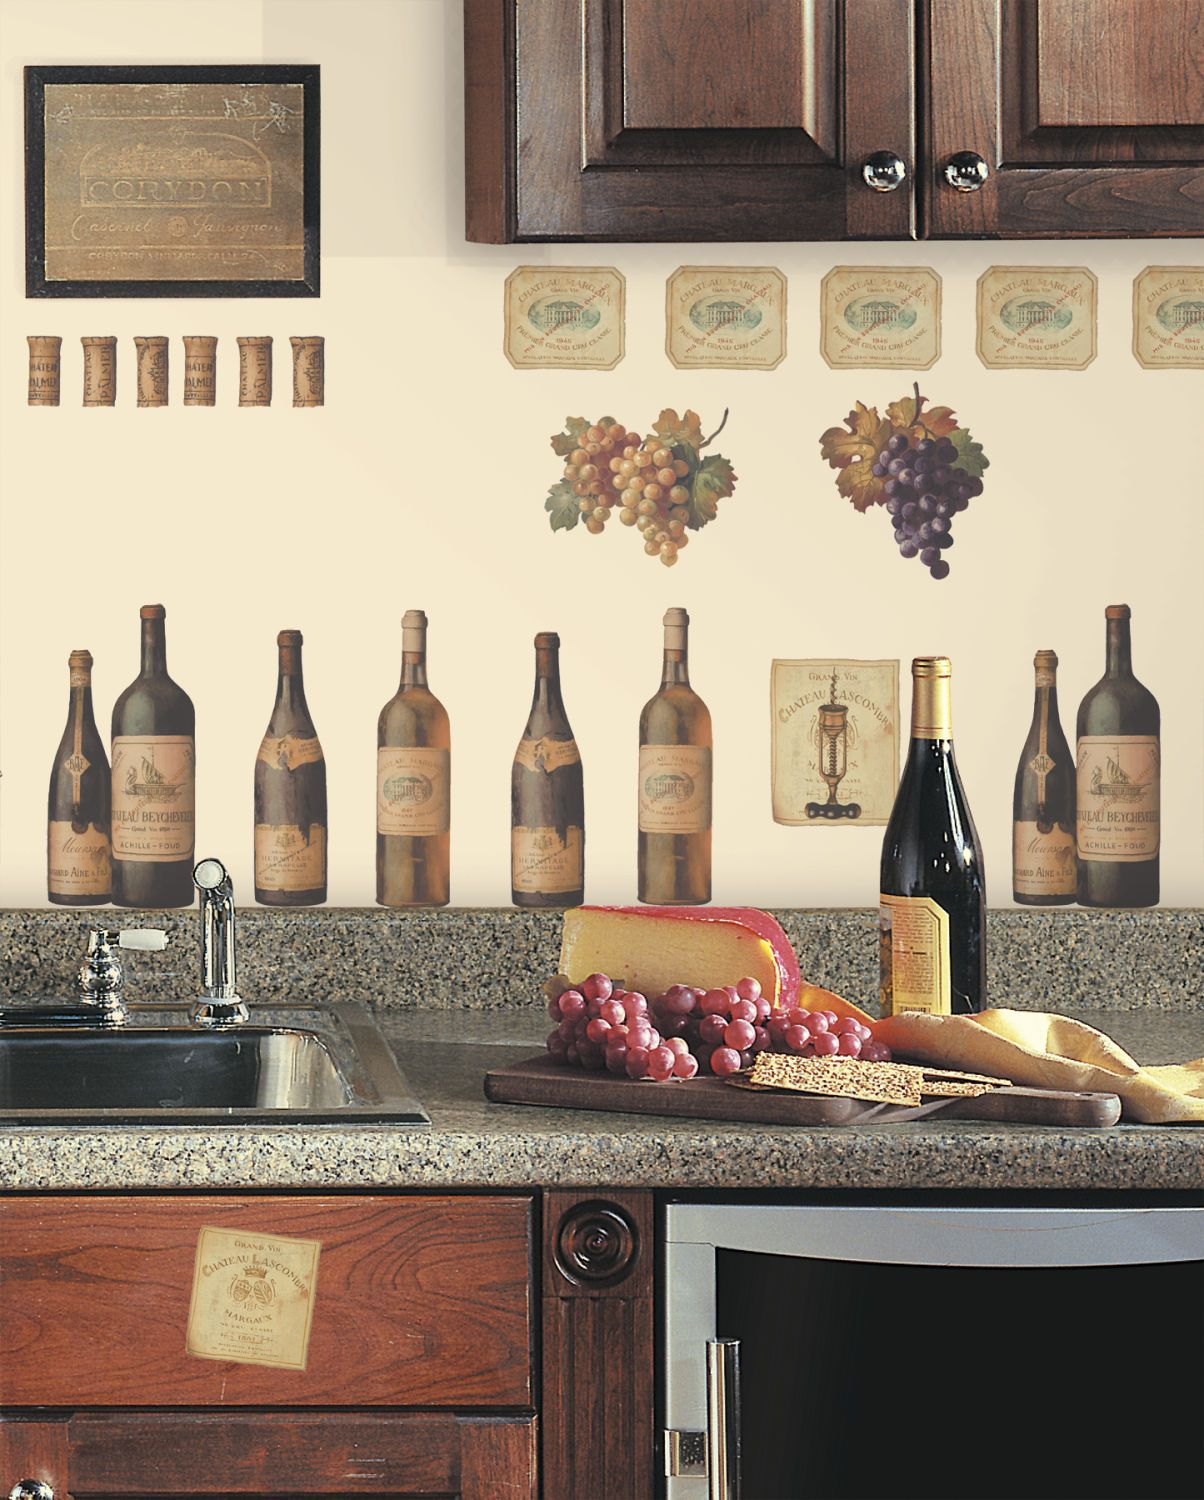 wine bottle themed kitchen decor all in one units decorative design